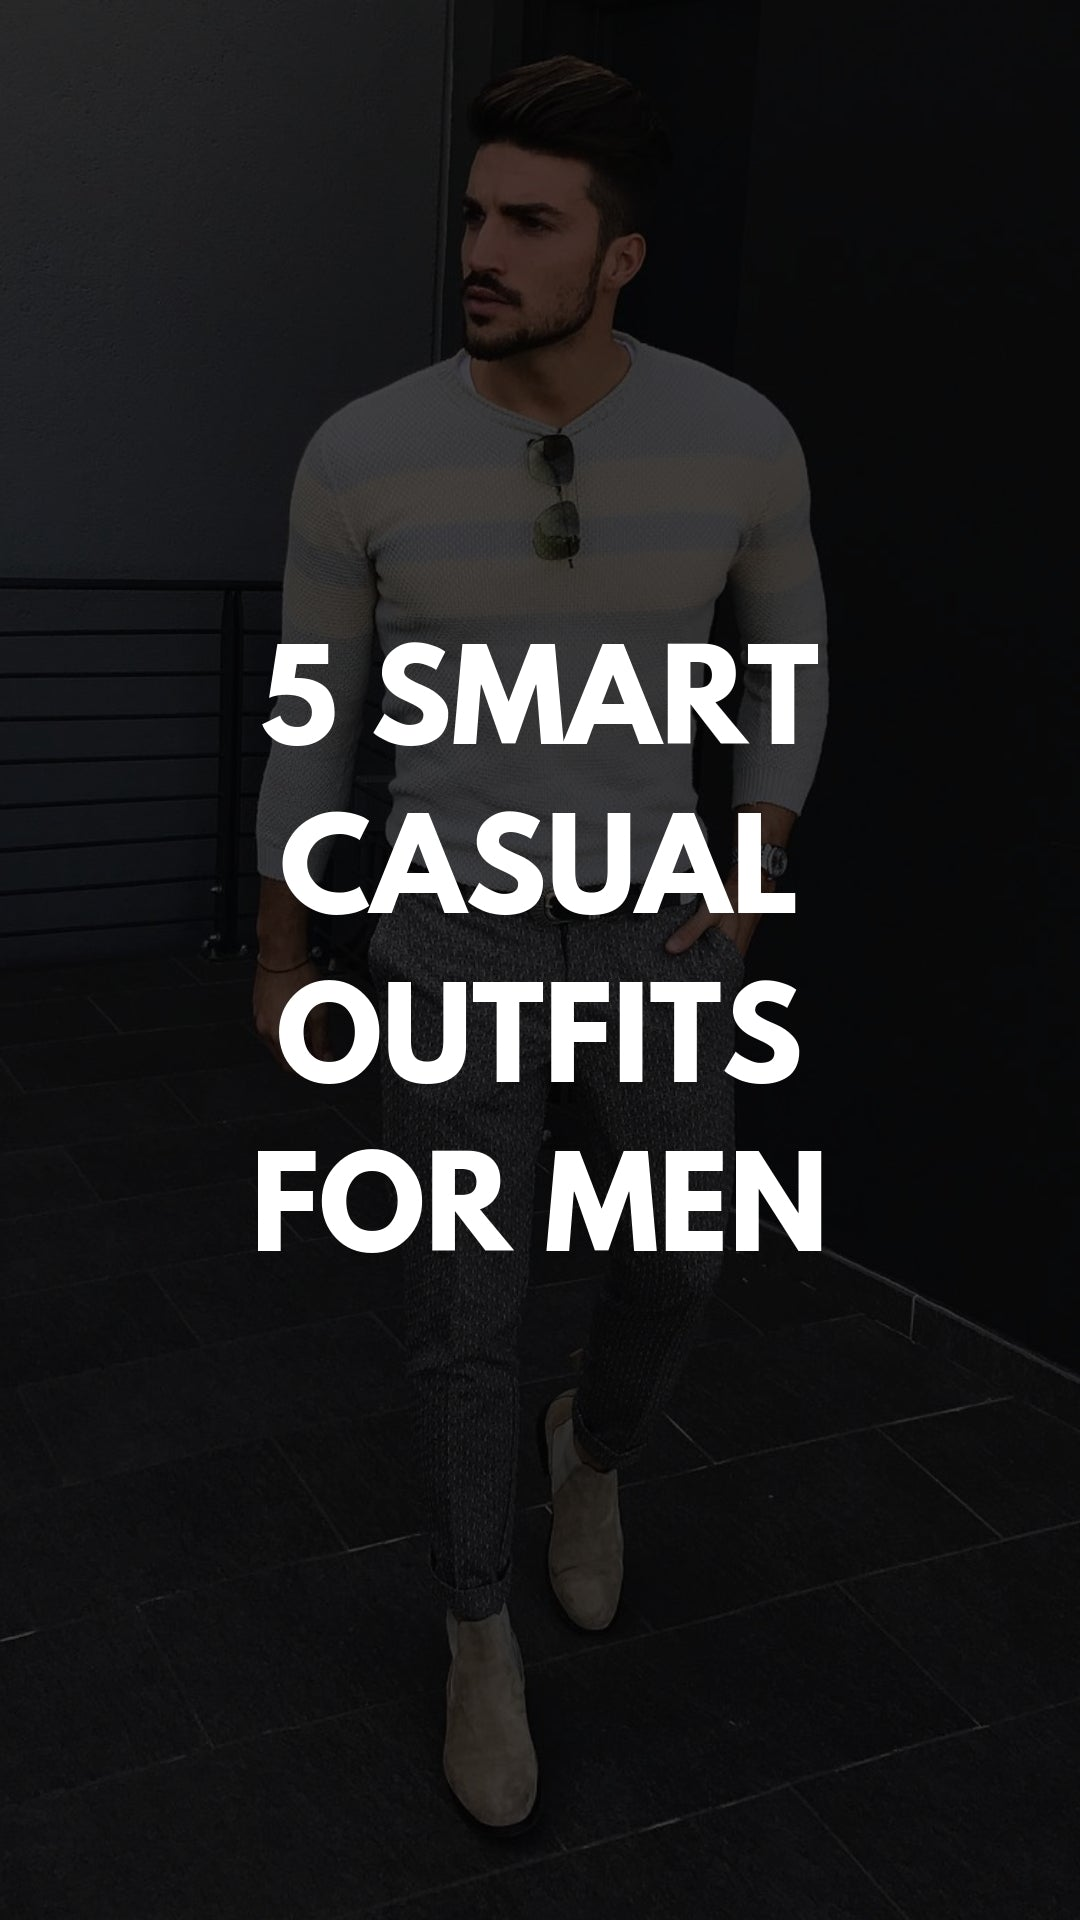 Smart Casual Dressing Style For Men - 5 Smart Casual Outfits For Guys #smart #casual #outfits #mensfashion #streetstyle